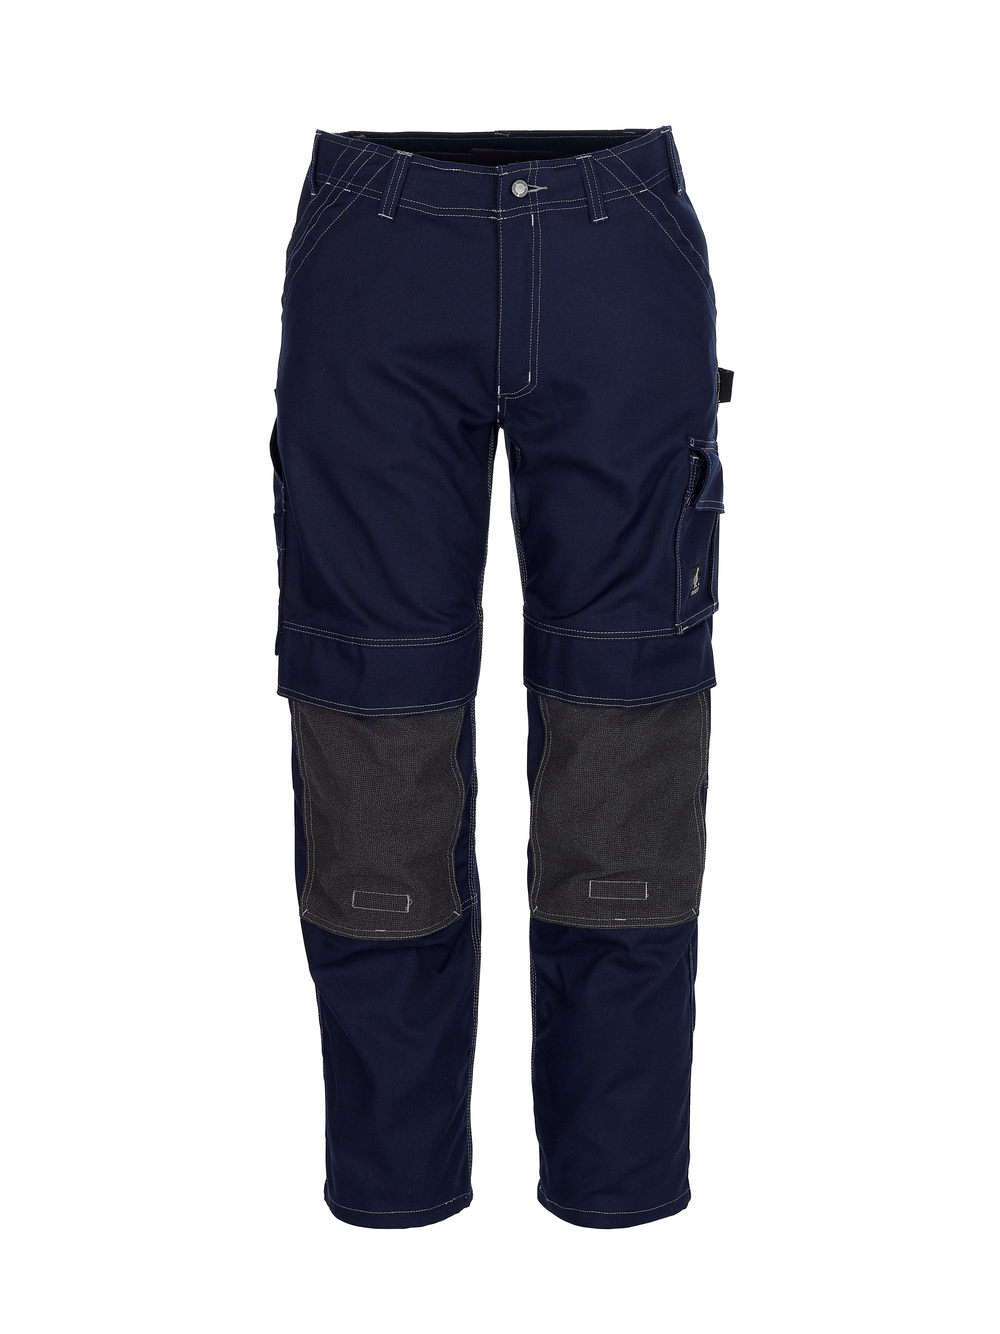 MASCOT LERIDA KNEEPAD PANTS